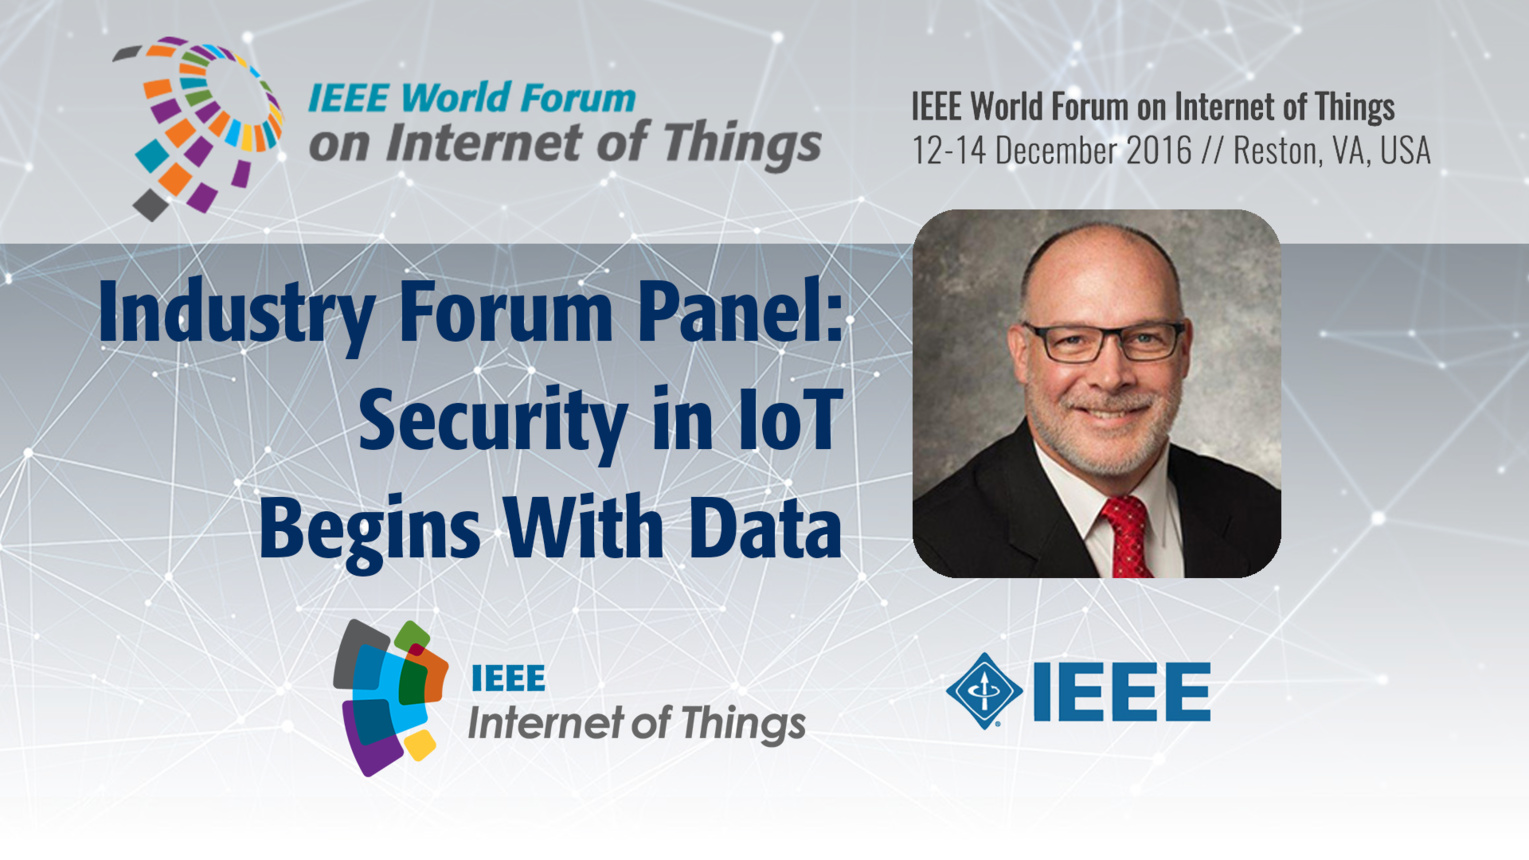 Daniel Engels: Security in IoT Begins With Data - Industry Forum Panel: WF IoT 2016